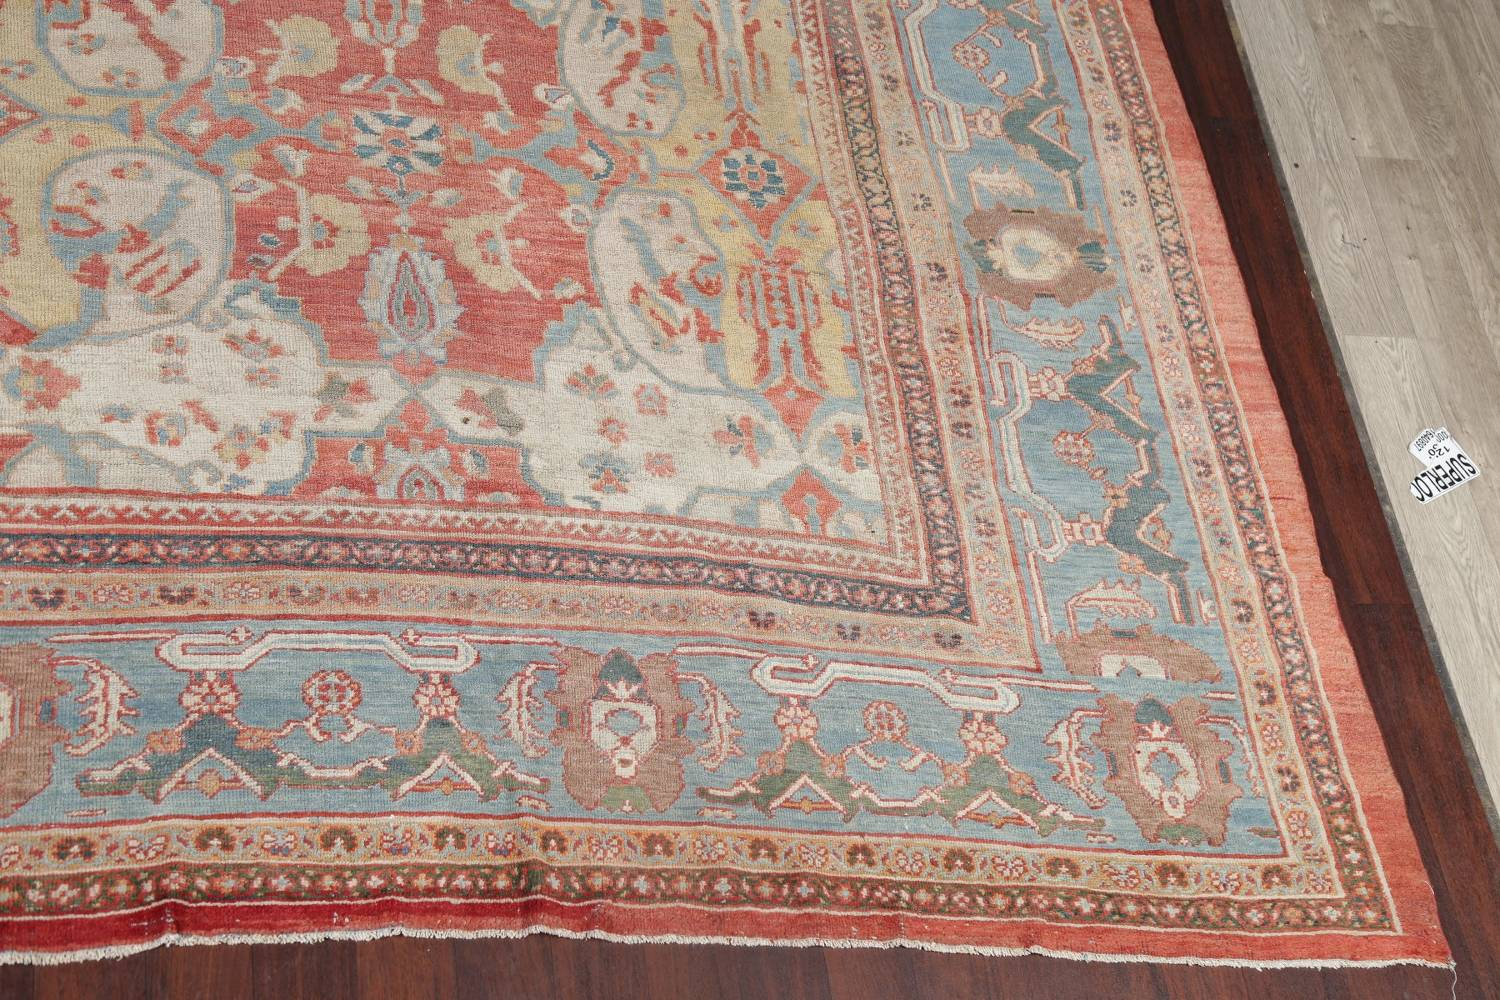 Palace Size Pre-1900 Antique Sultanabad Persian Rug 14x24 image 5